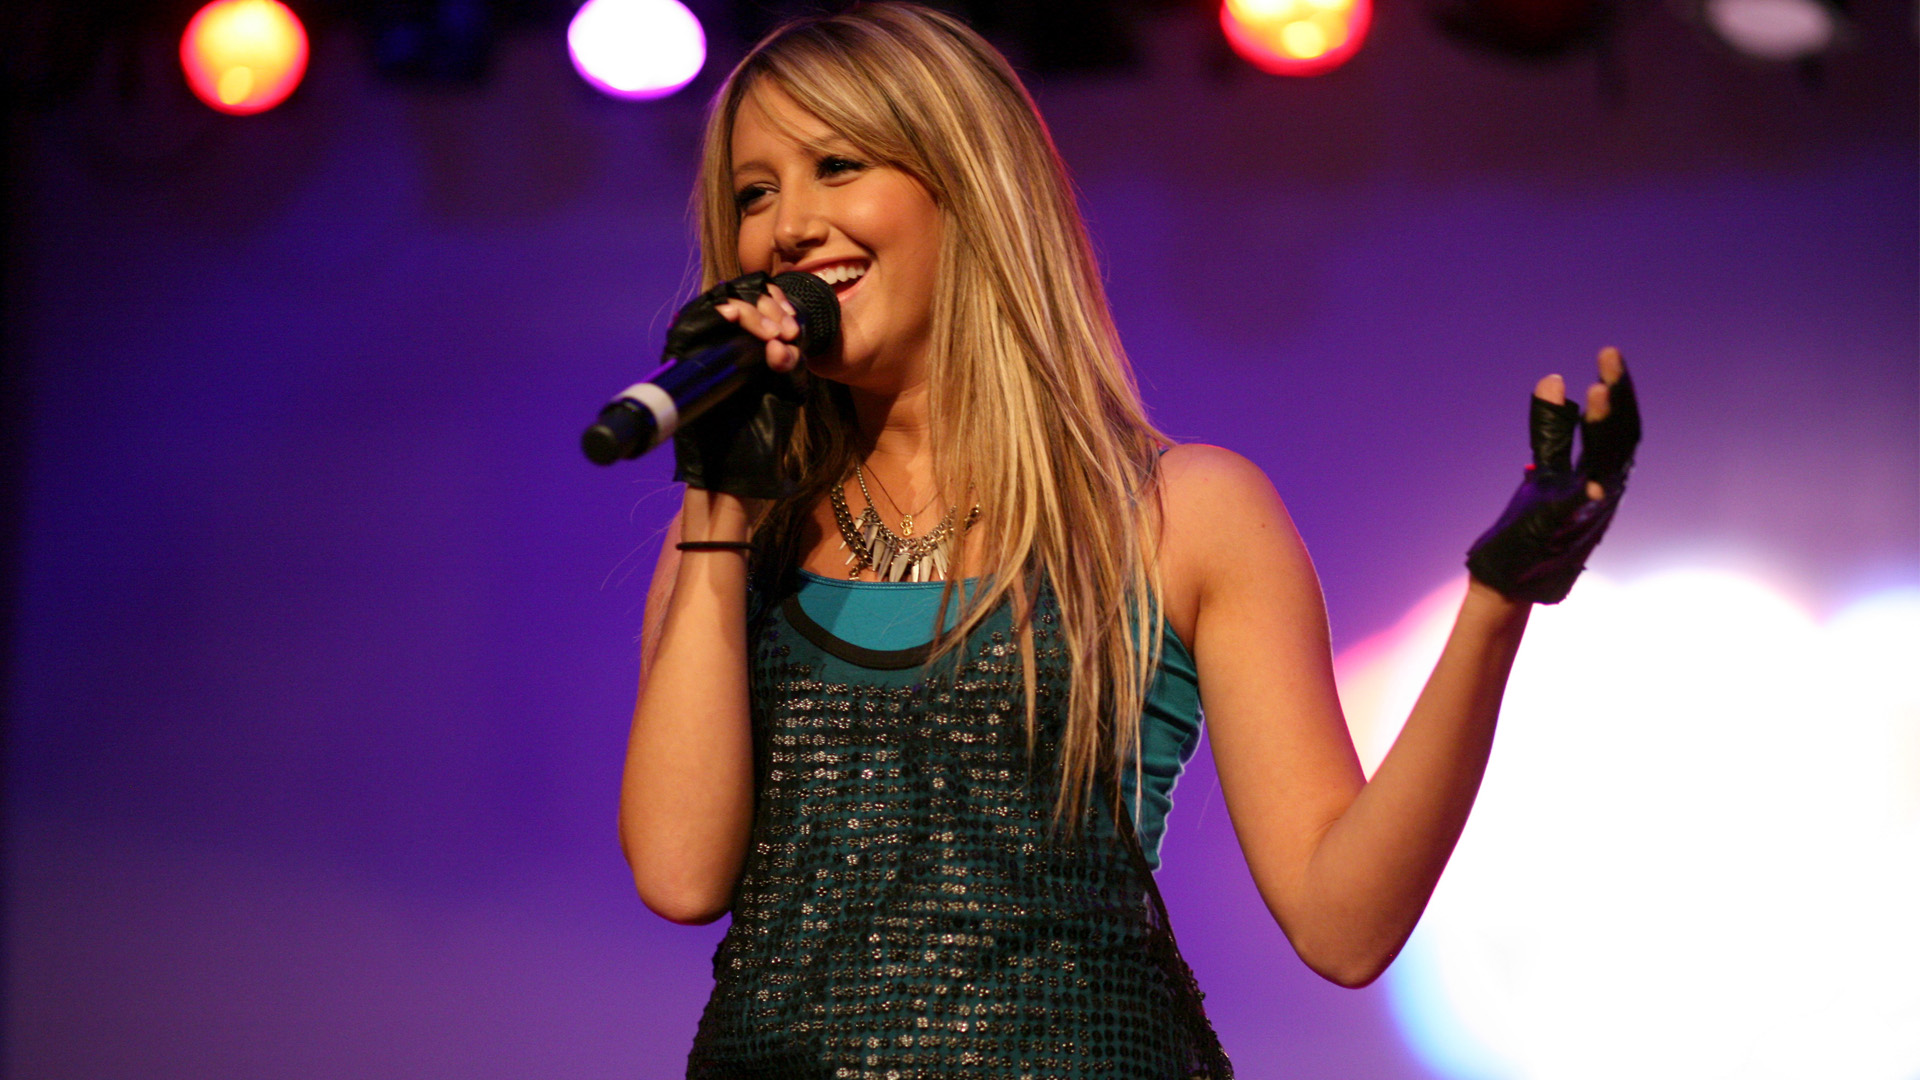 HD Wallpapers Ashley Tisdale Singing HDTV